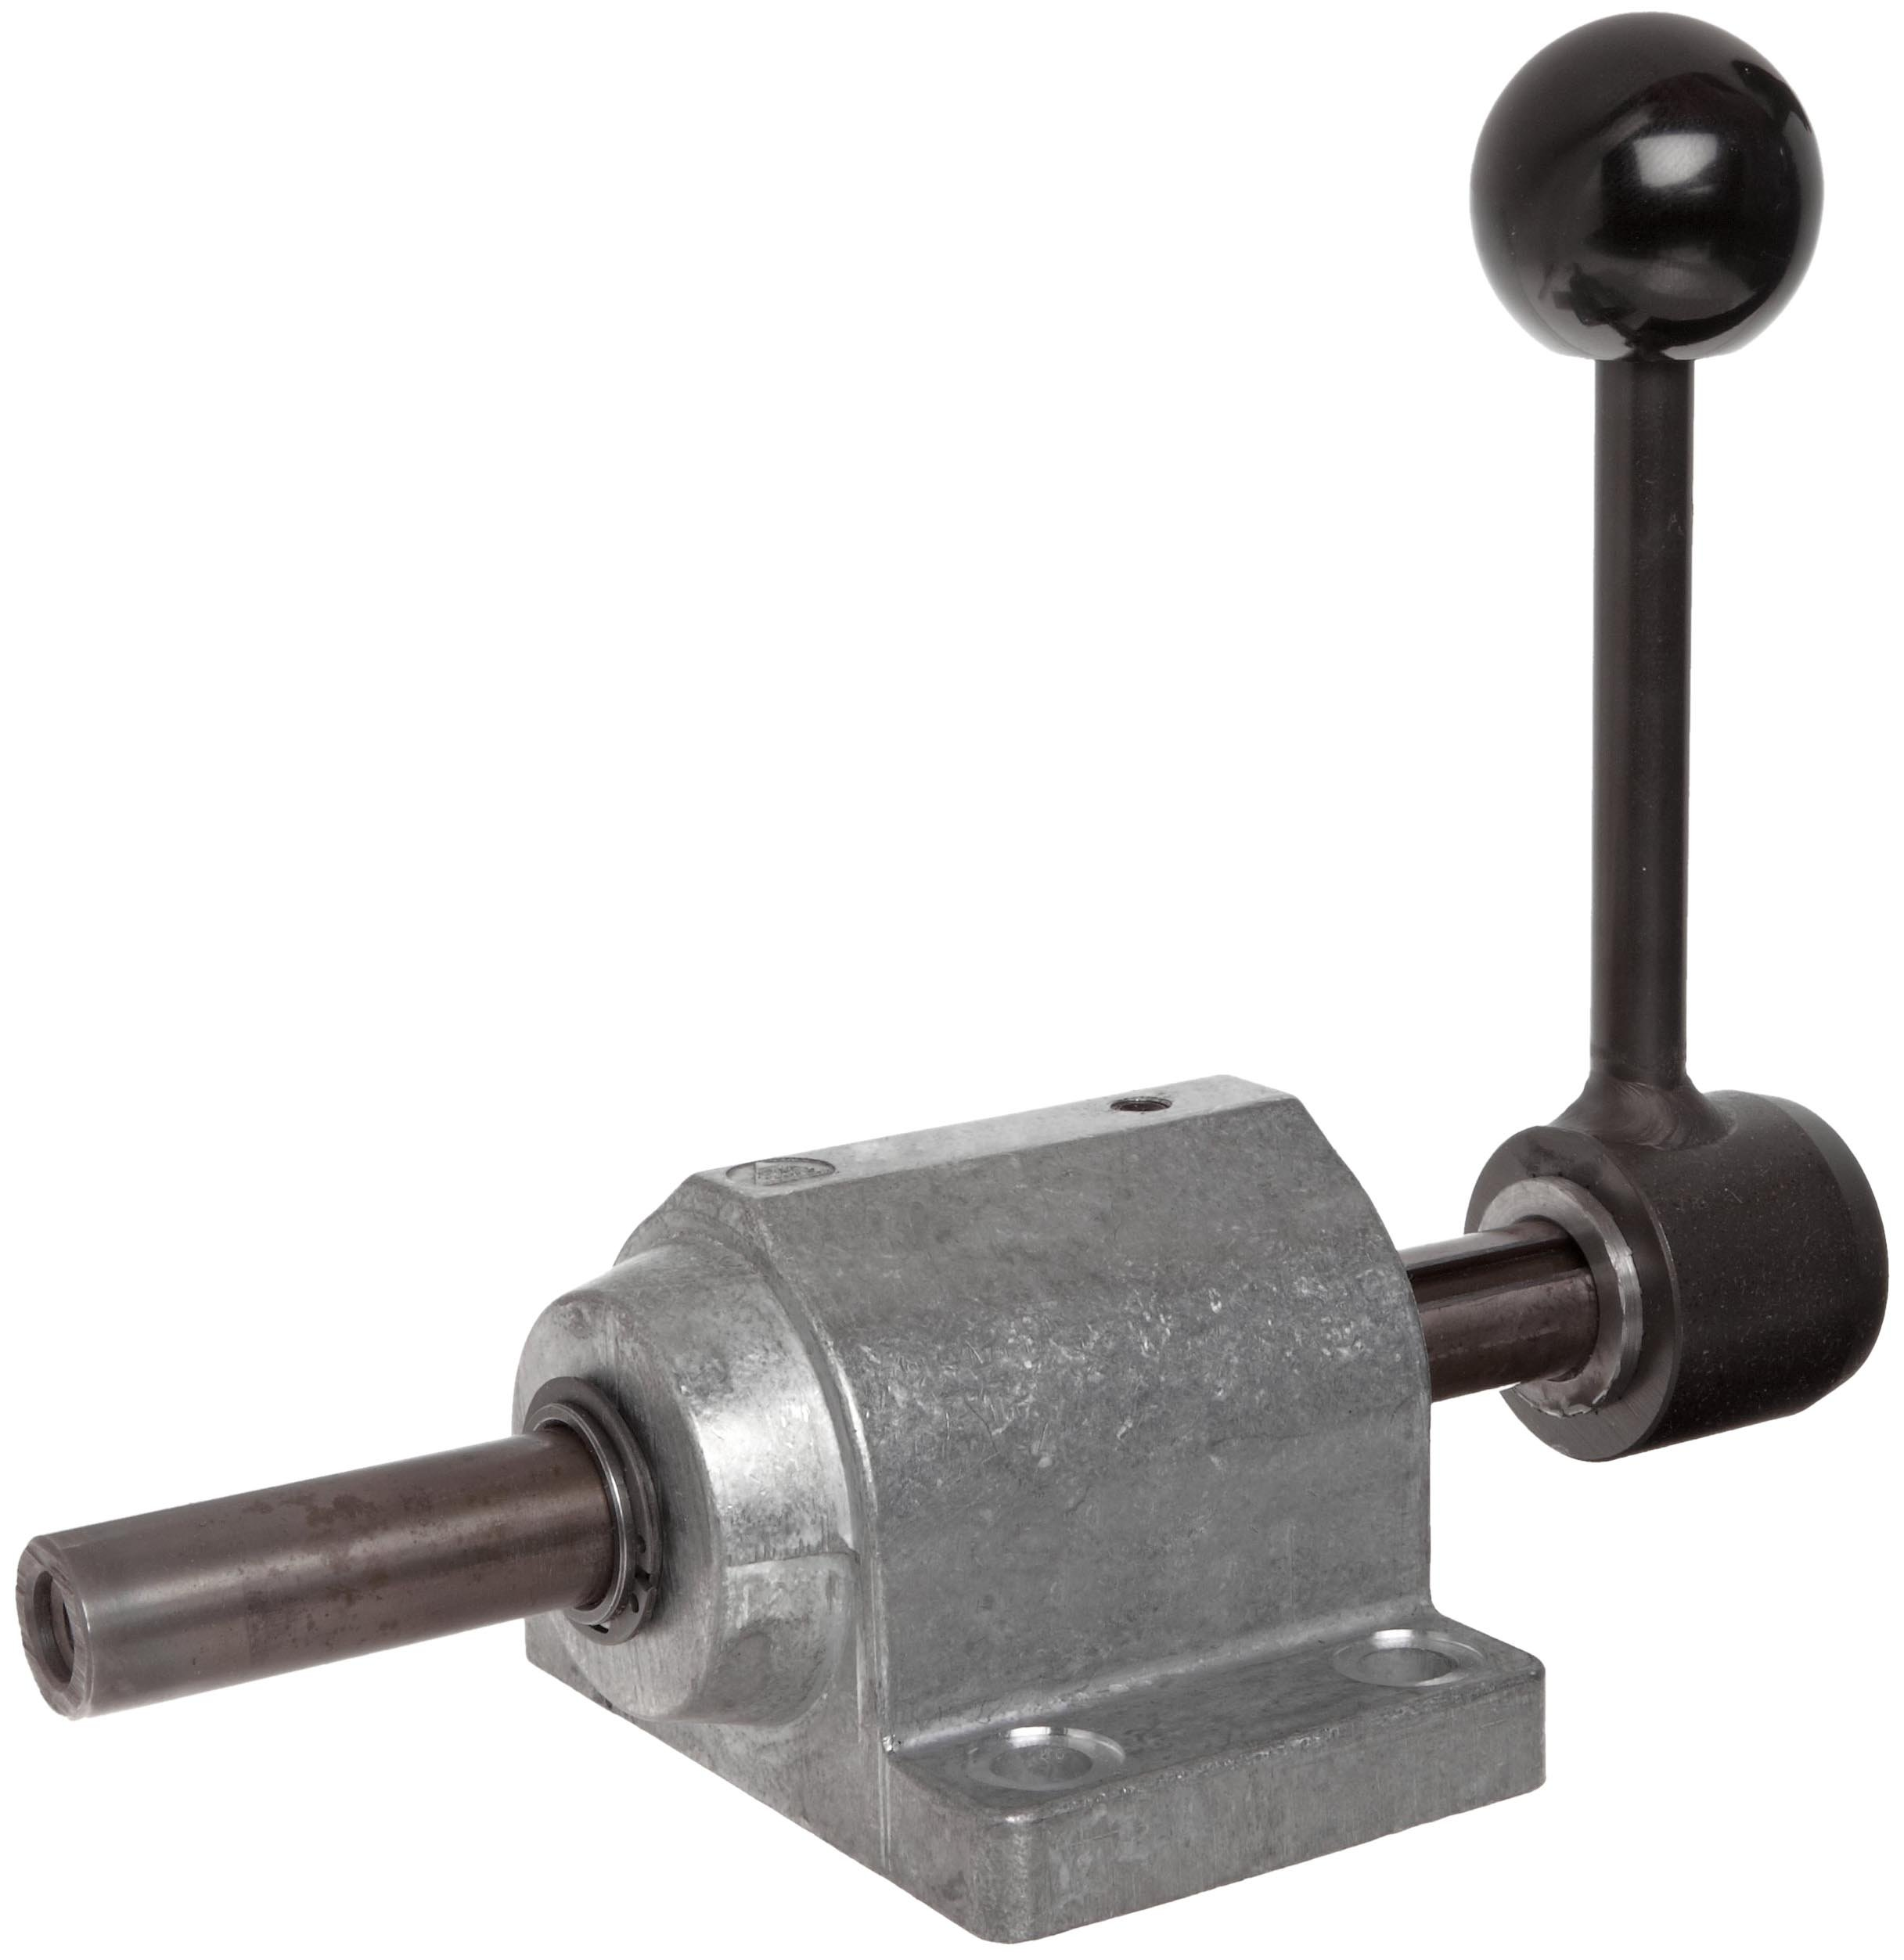 DE-STA-CO FO-161/60 Variable Stroke Straight Line Action Plunger Clamp by De-Sta-Co